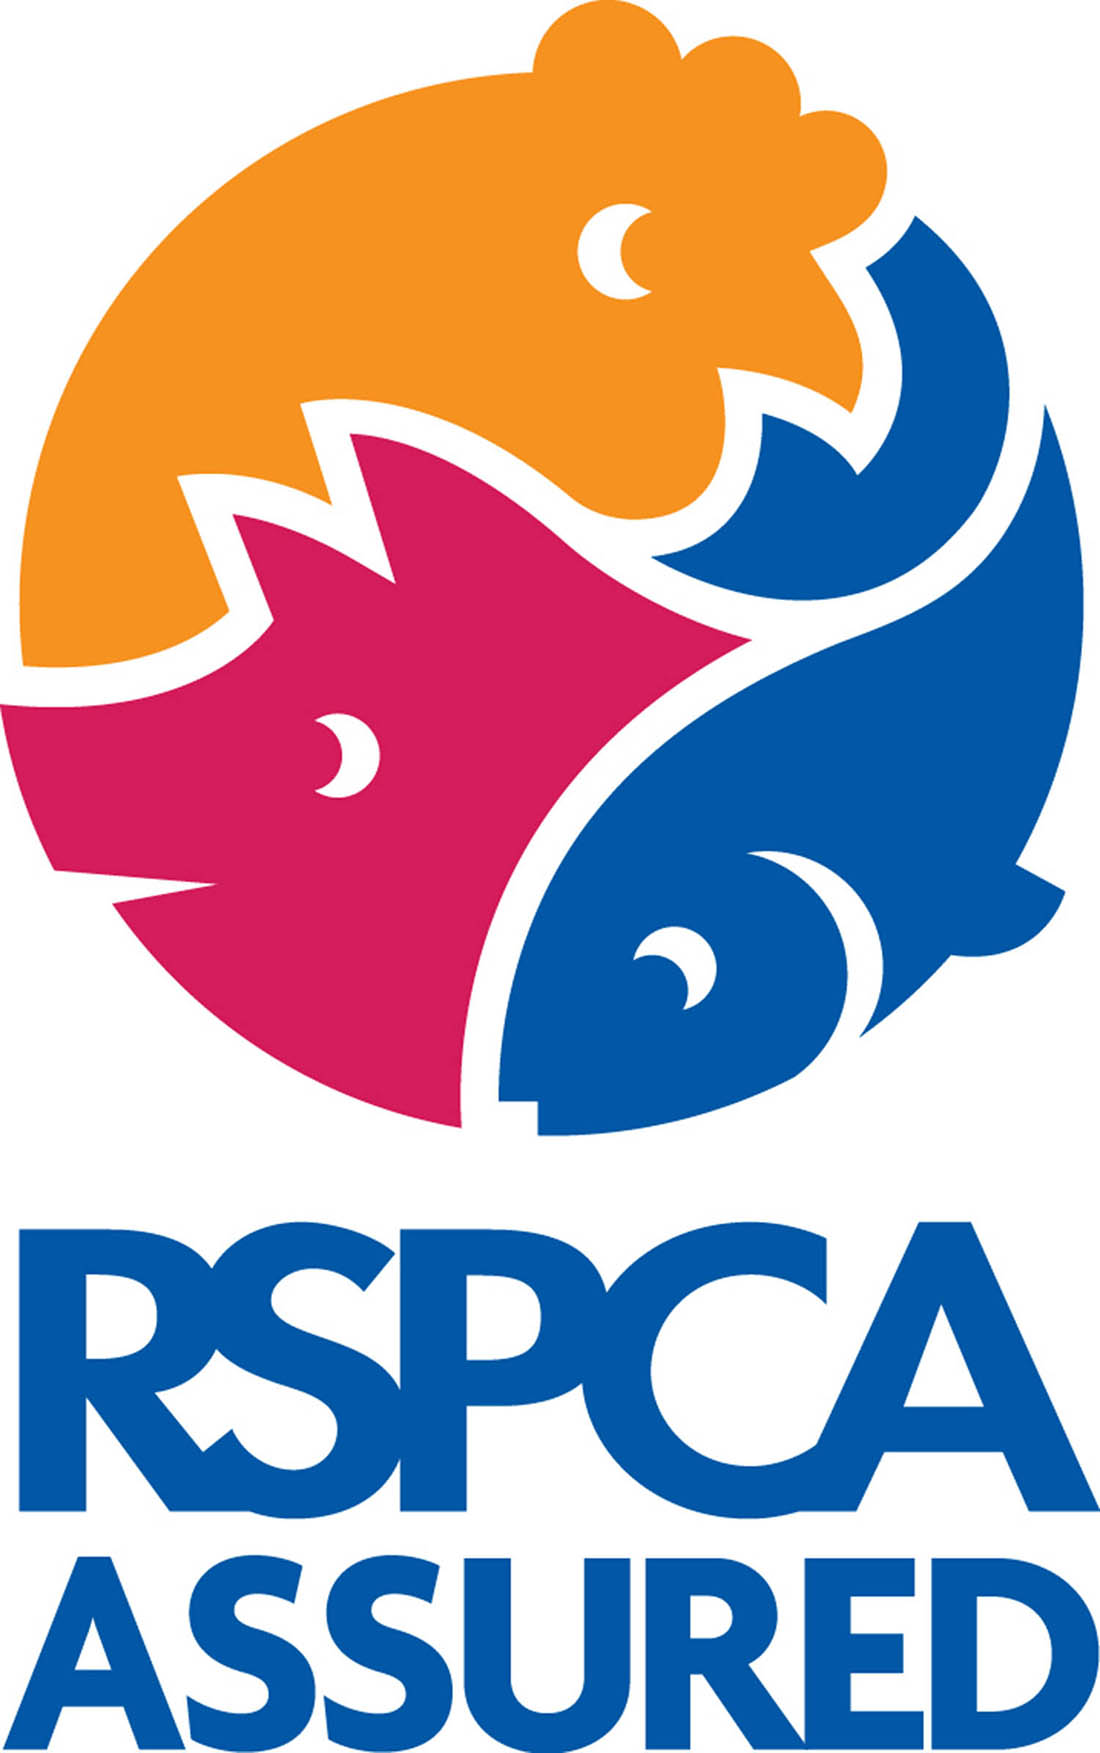 RSPCA Assurance achieves 33% recognition in first year - NEWS - Farmers Guardian